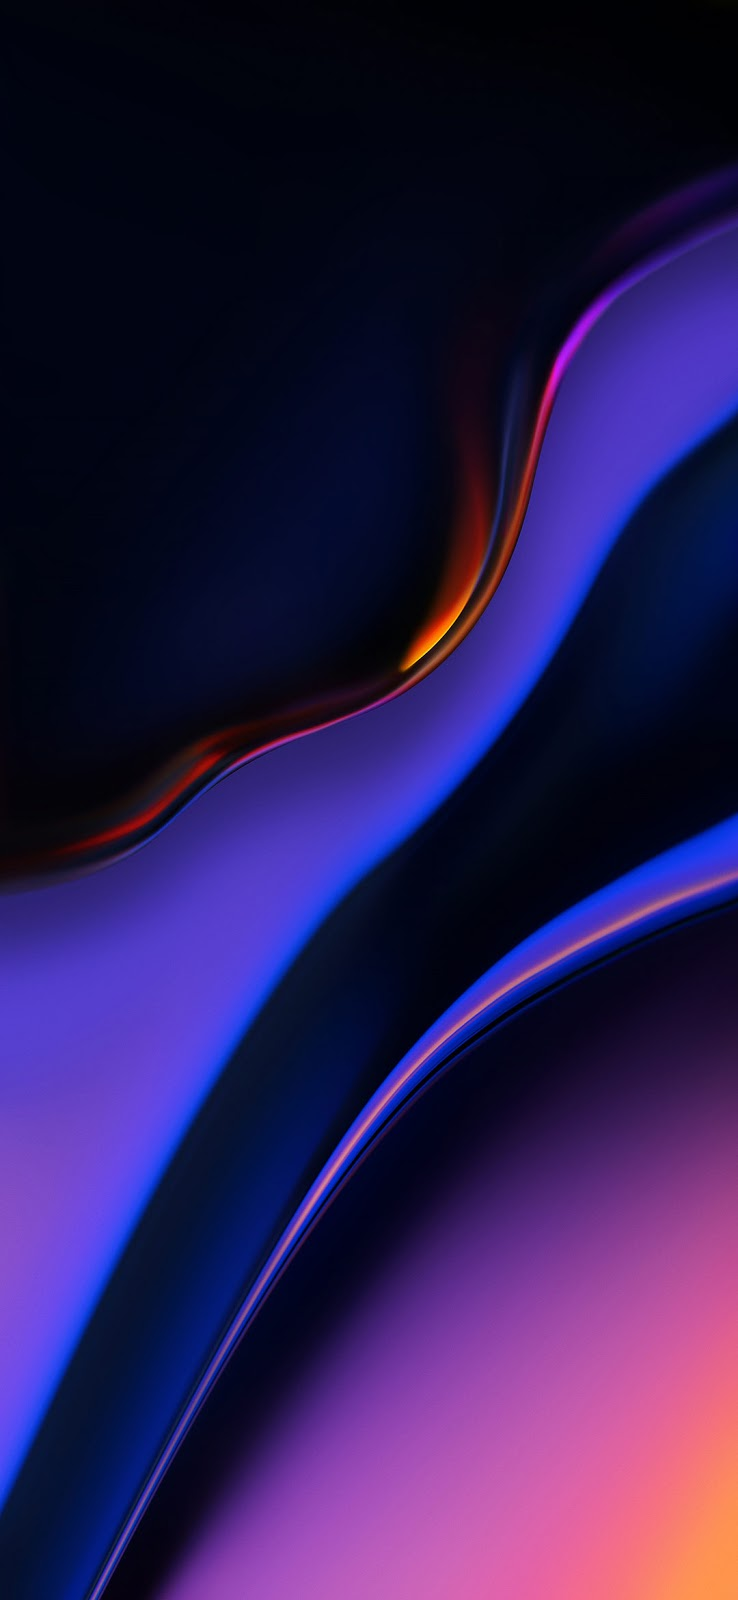 oneplus 6t Original wallpaper